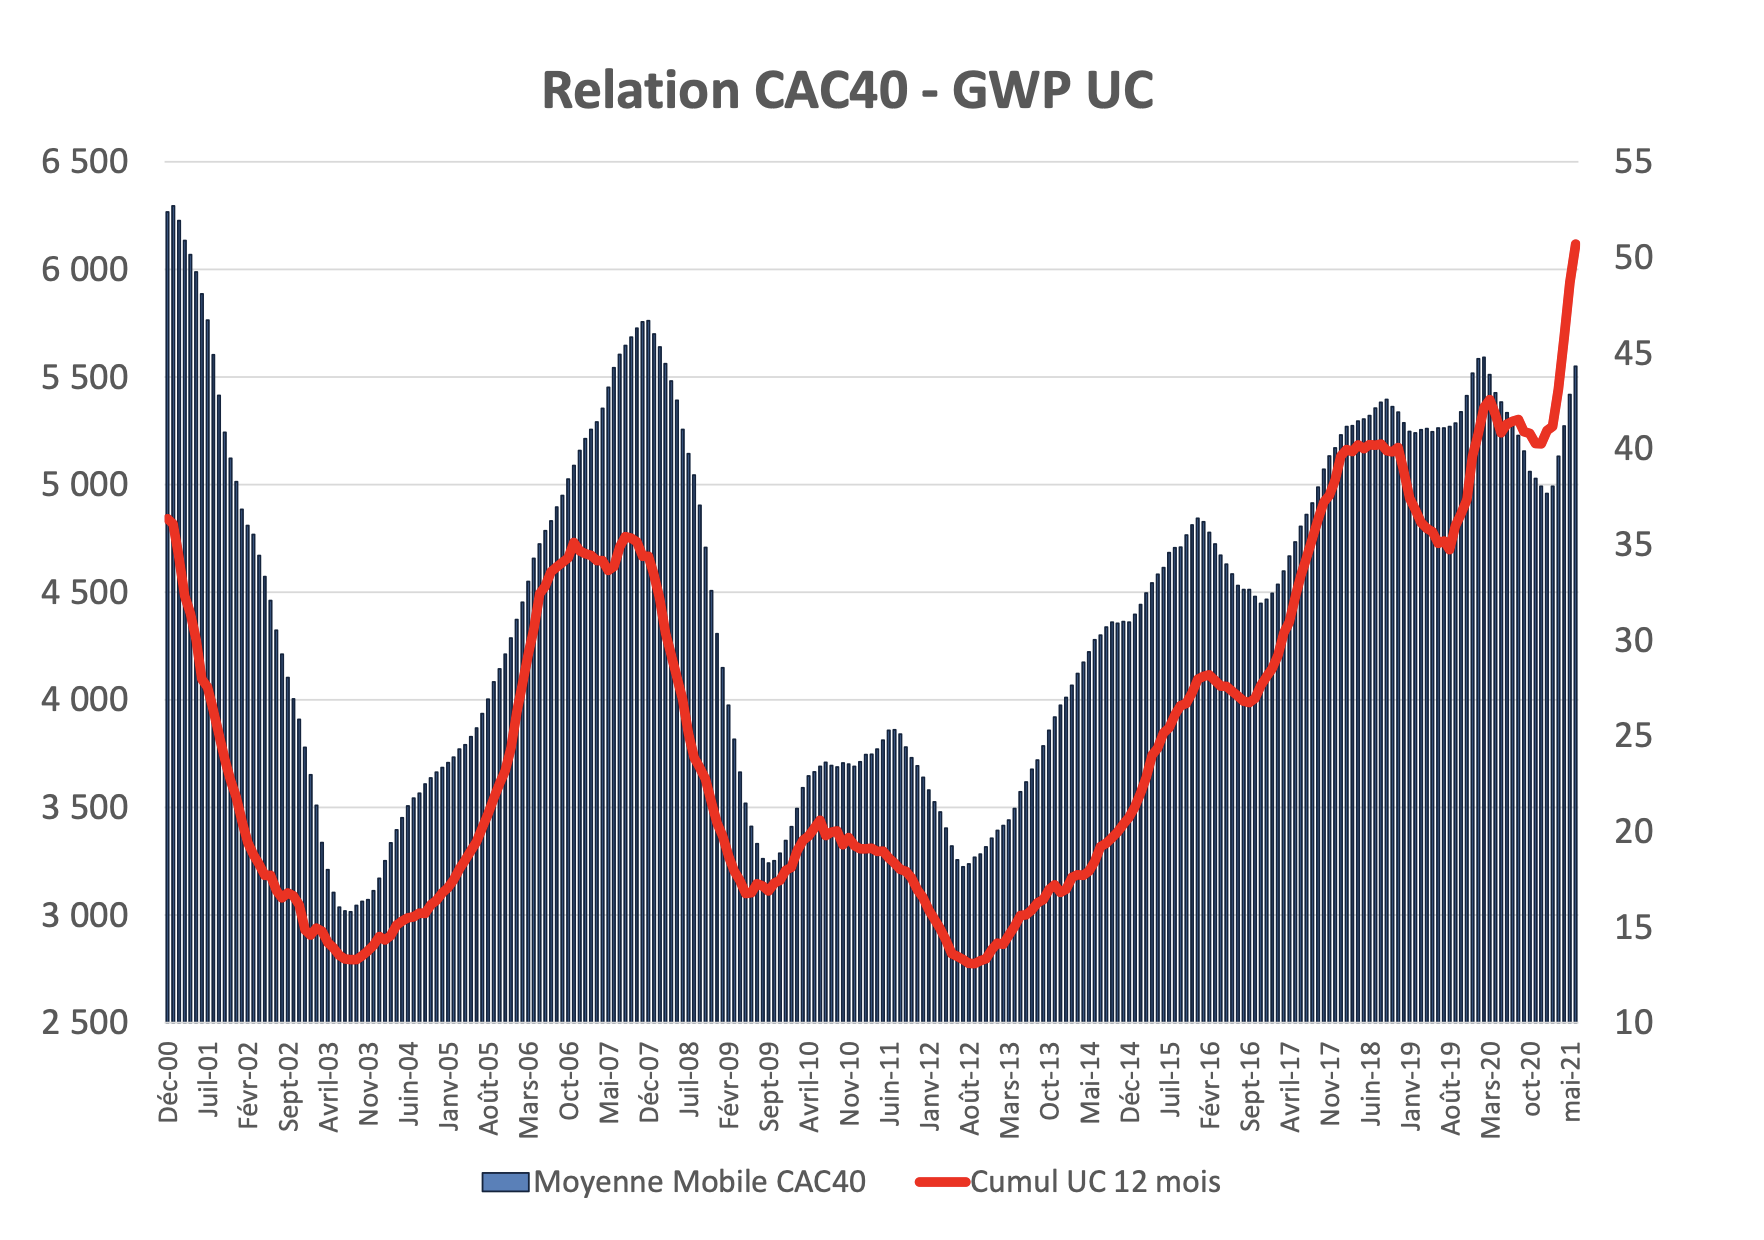 Relation CAC40 - GWP UC